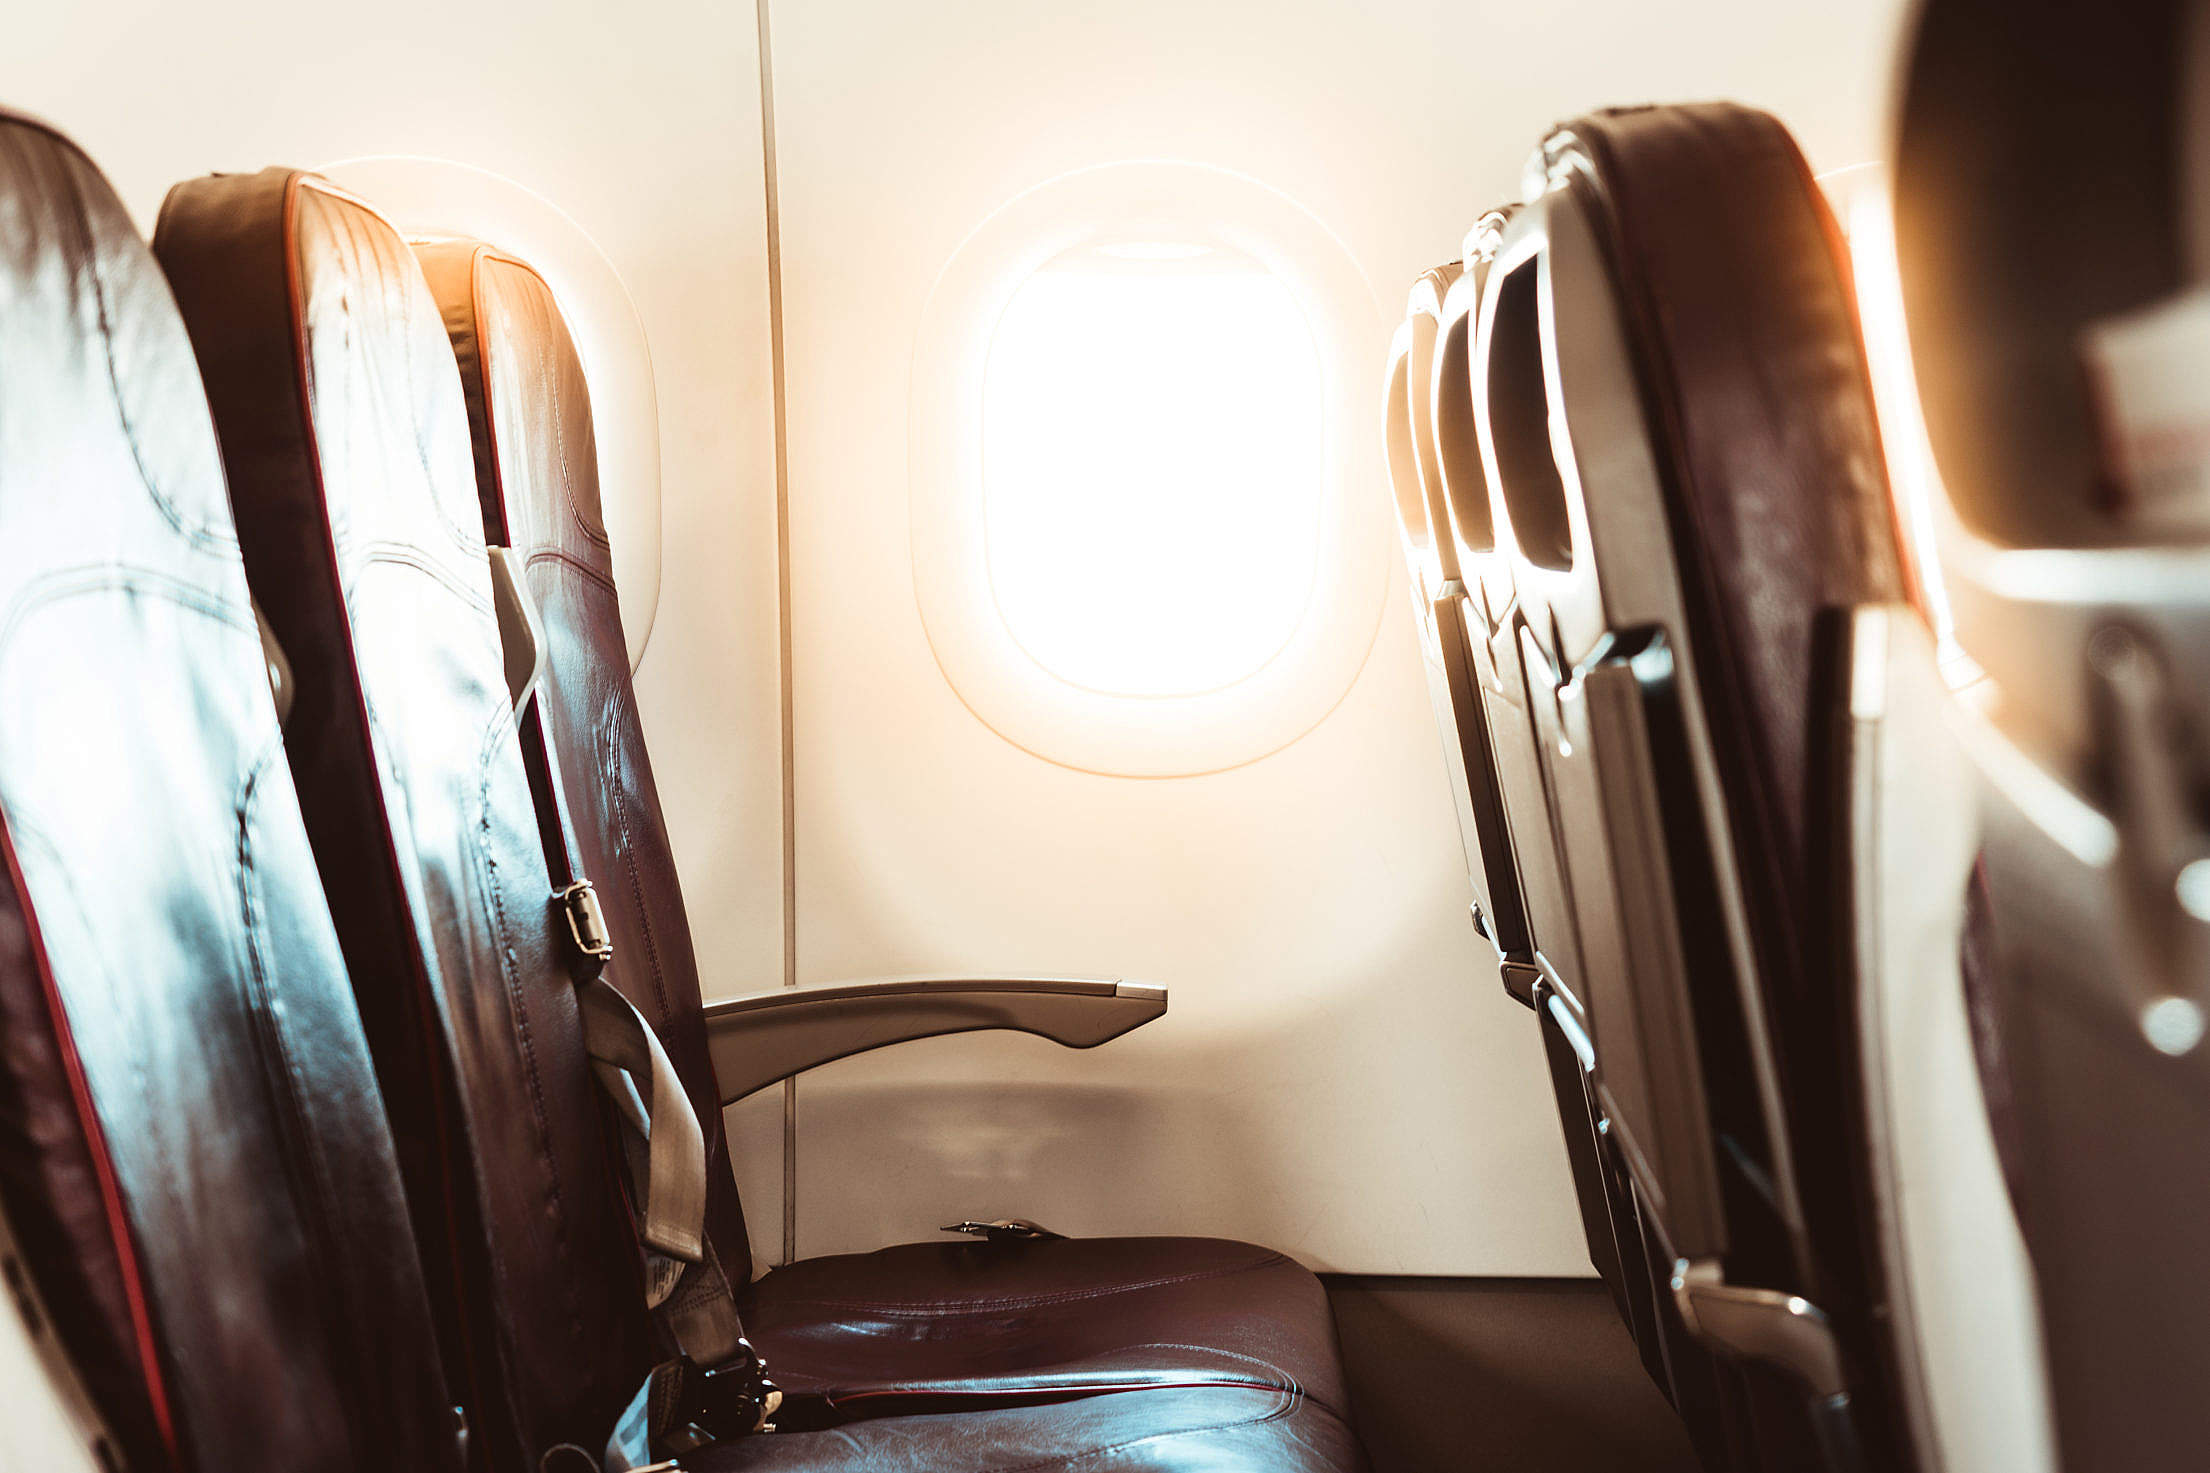 Download Airplane Window Free Stock Photo